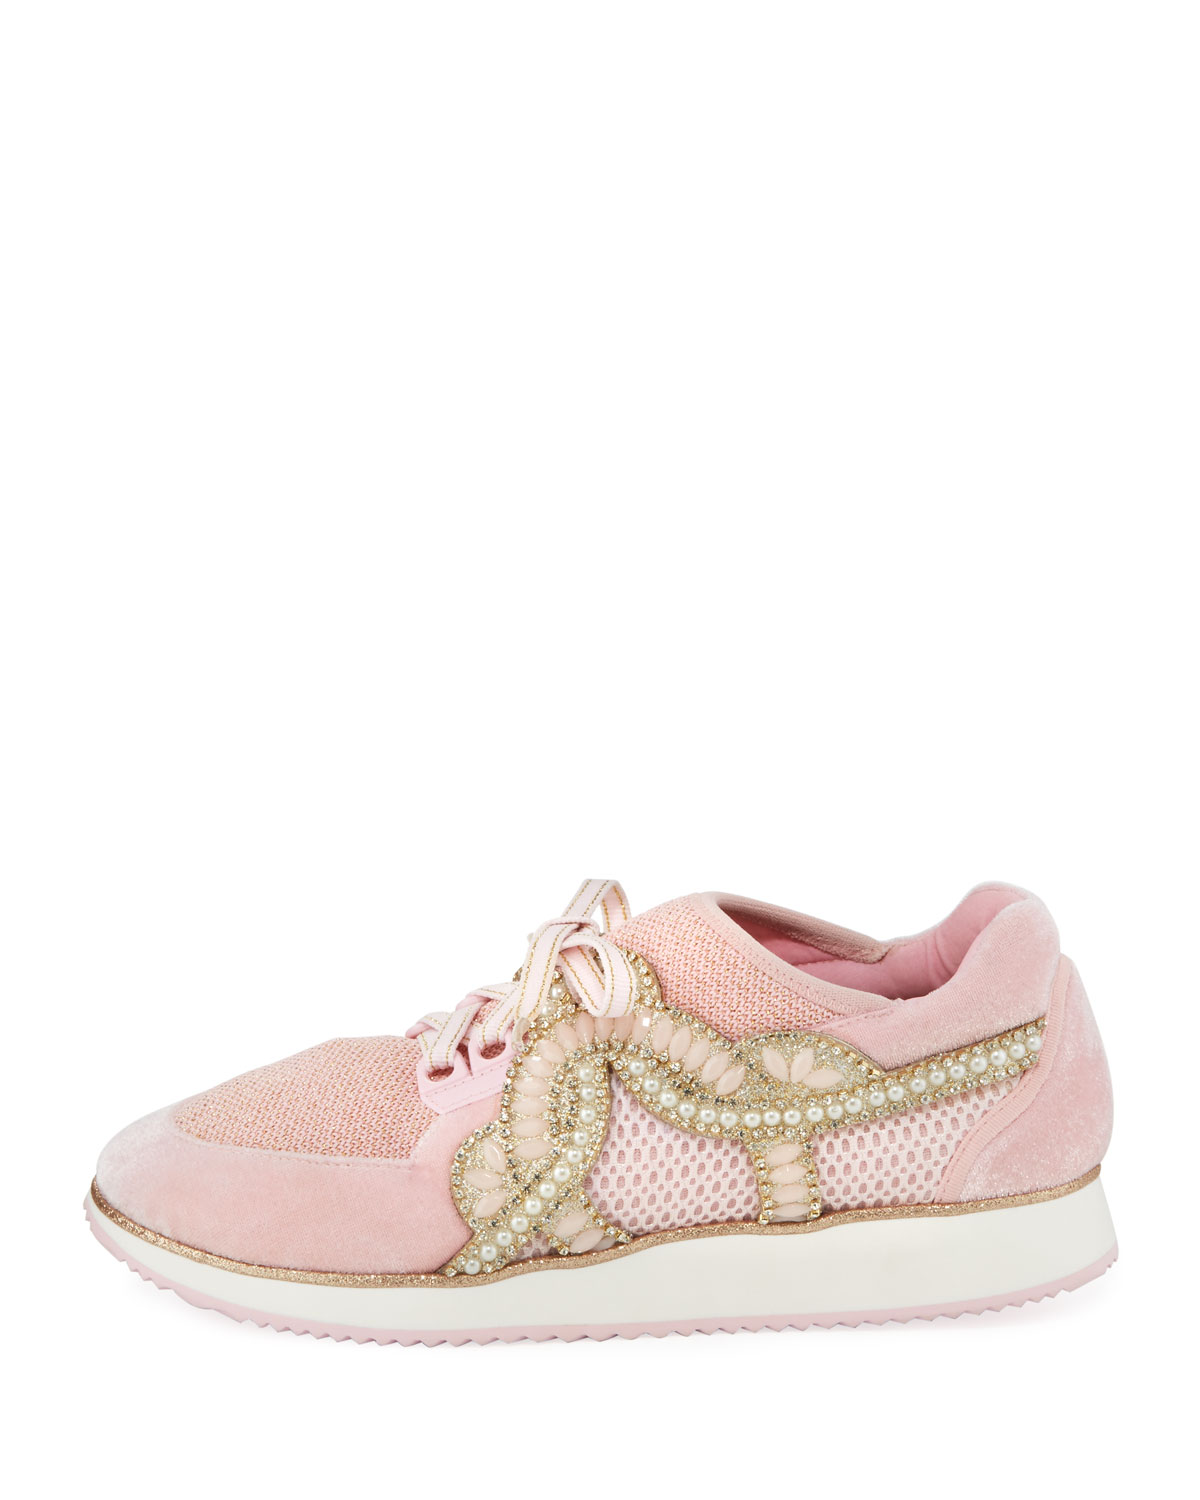 Sophia Webster Royalty Embellished Lace-Up Trainer Sneakers XfL0rQu7GA